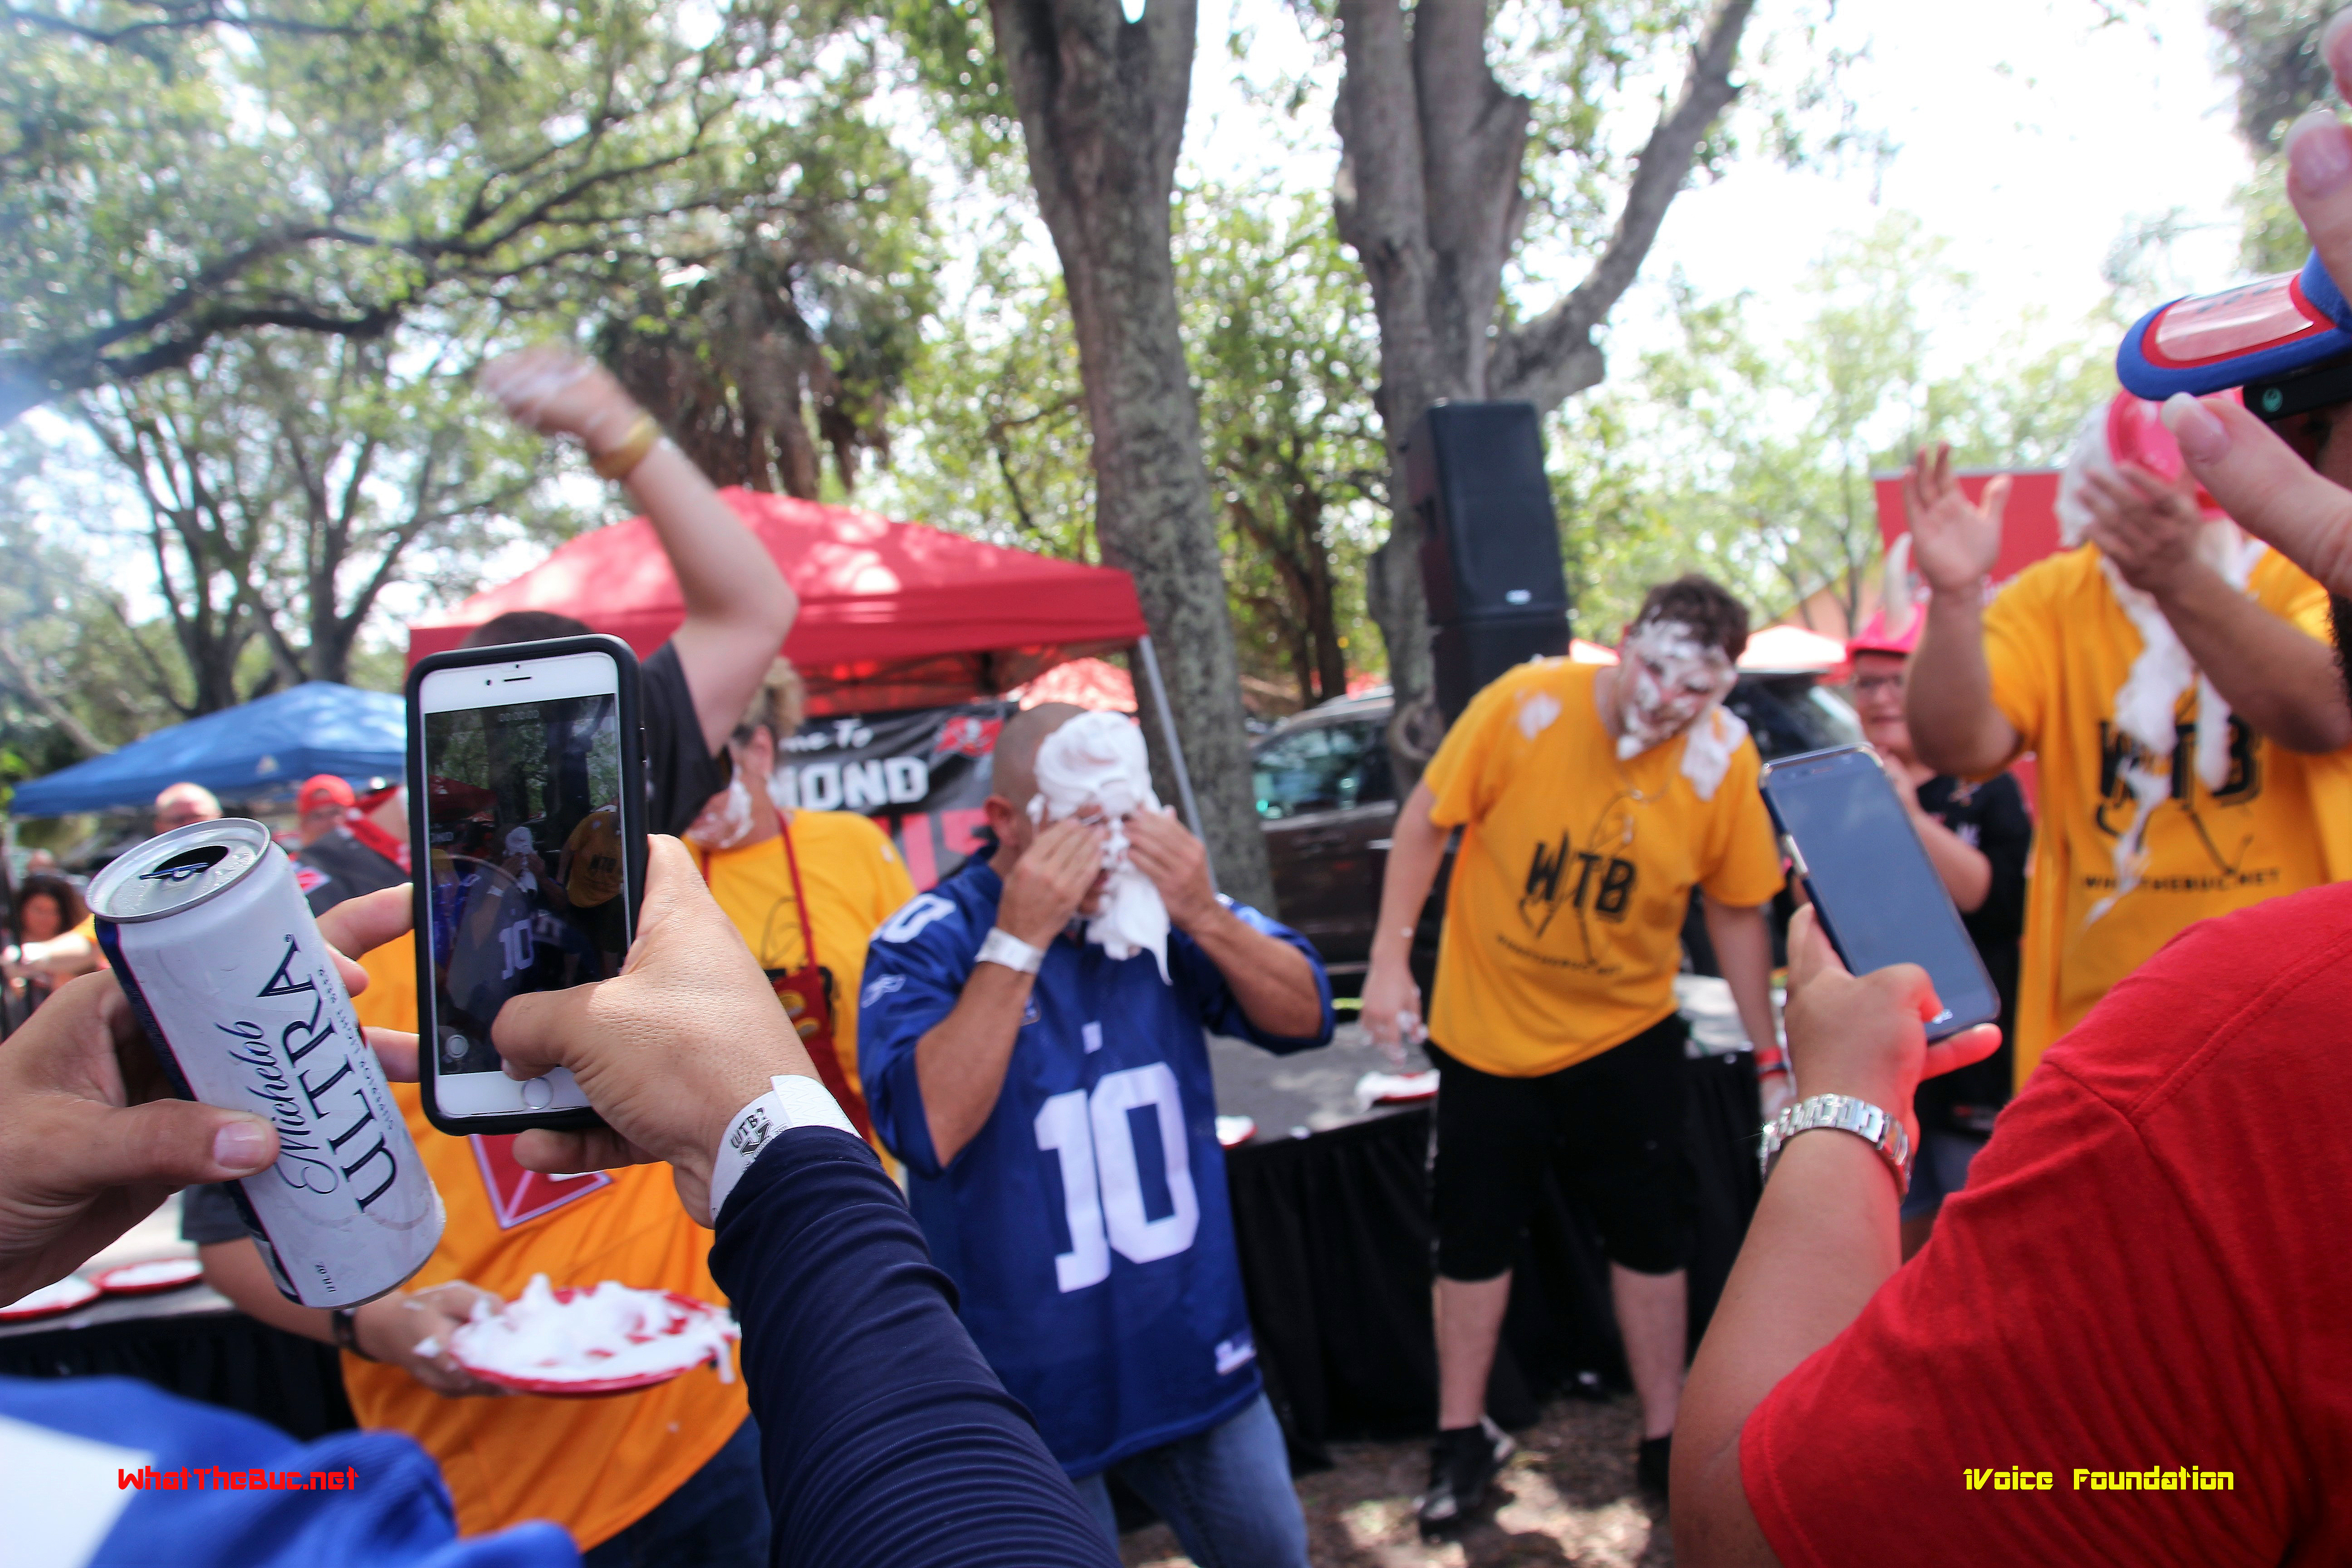 WTB Giants Tailgate for 1Voice